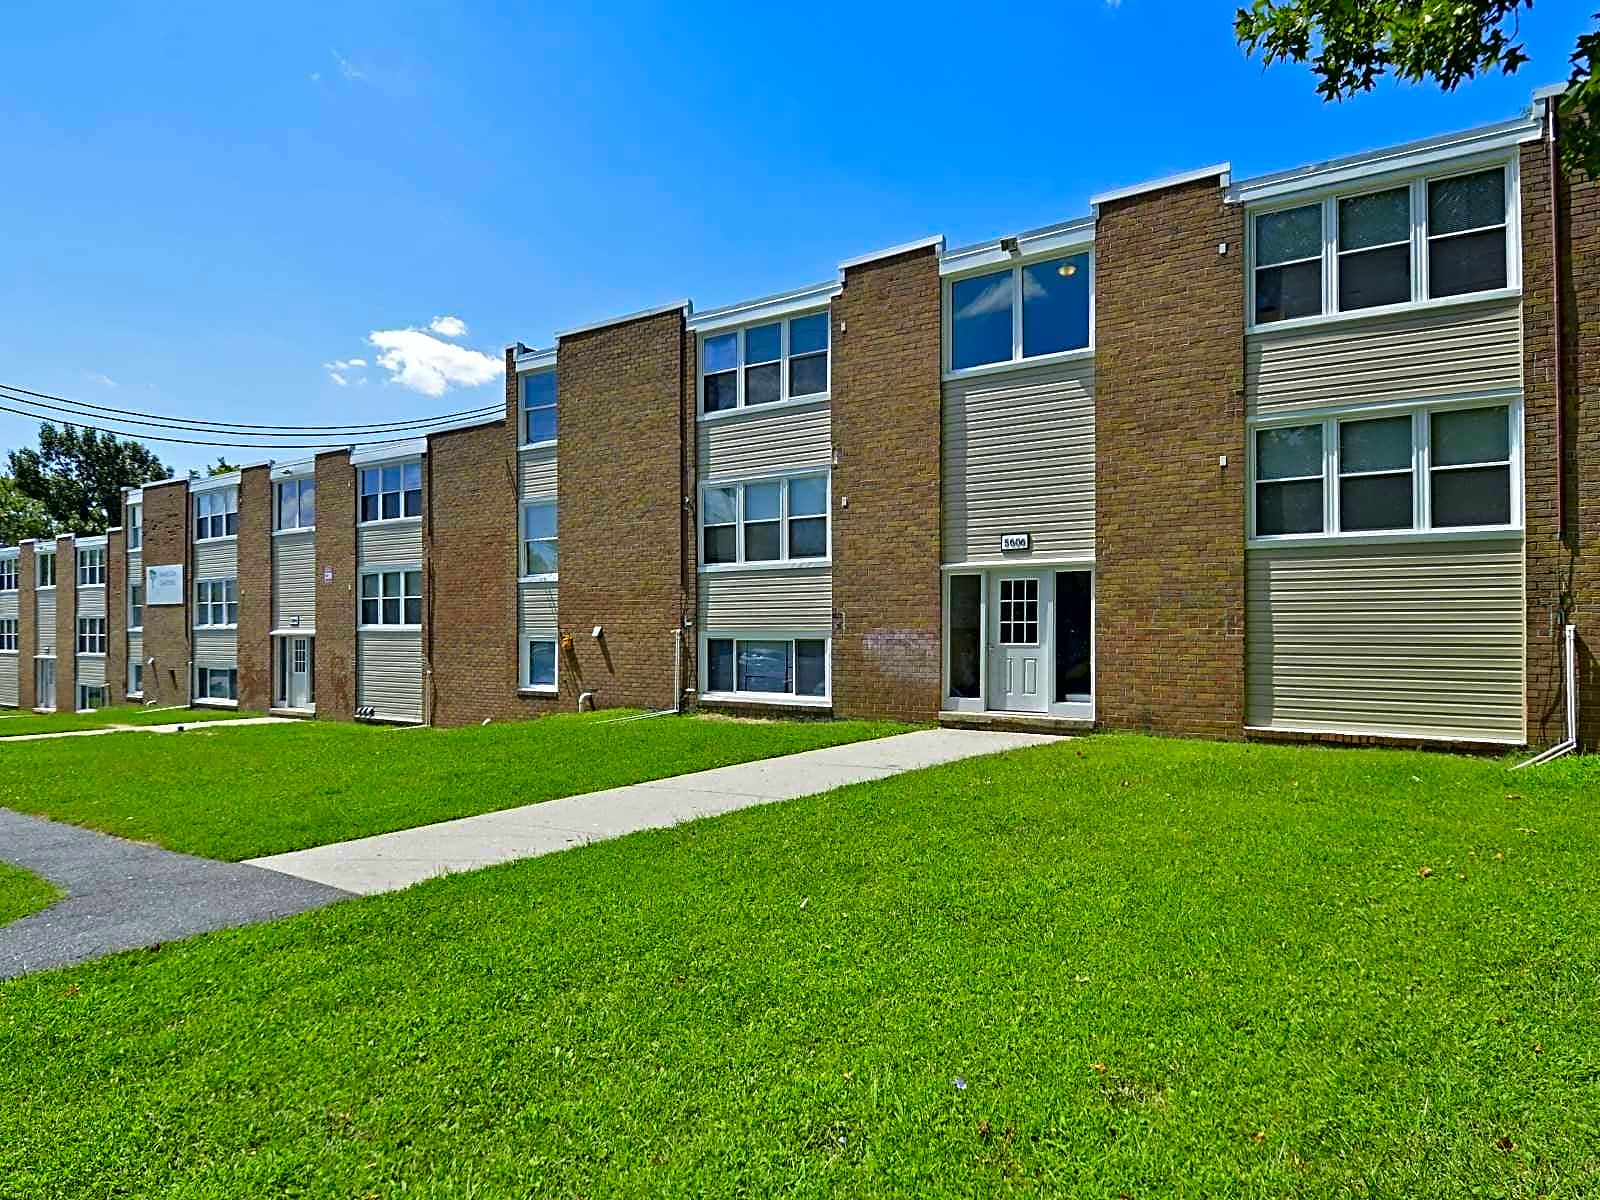 Photo: Baltimore Apartment for Rent - $675.00 / month; 1 Bd & 1 Ba